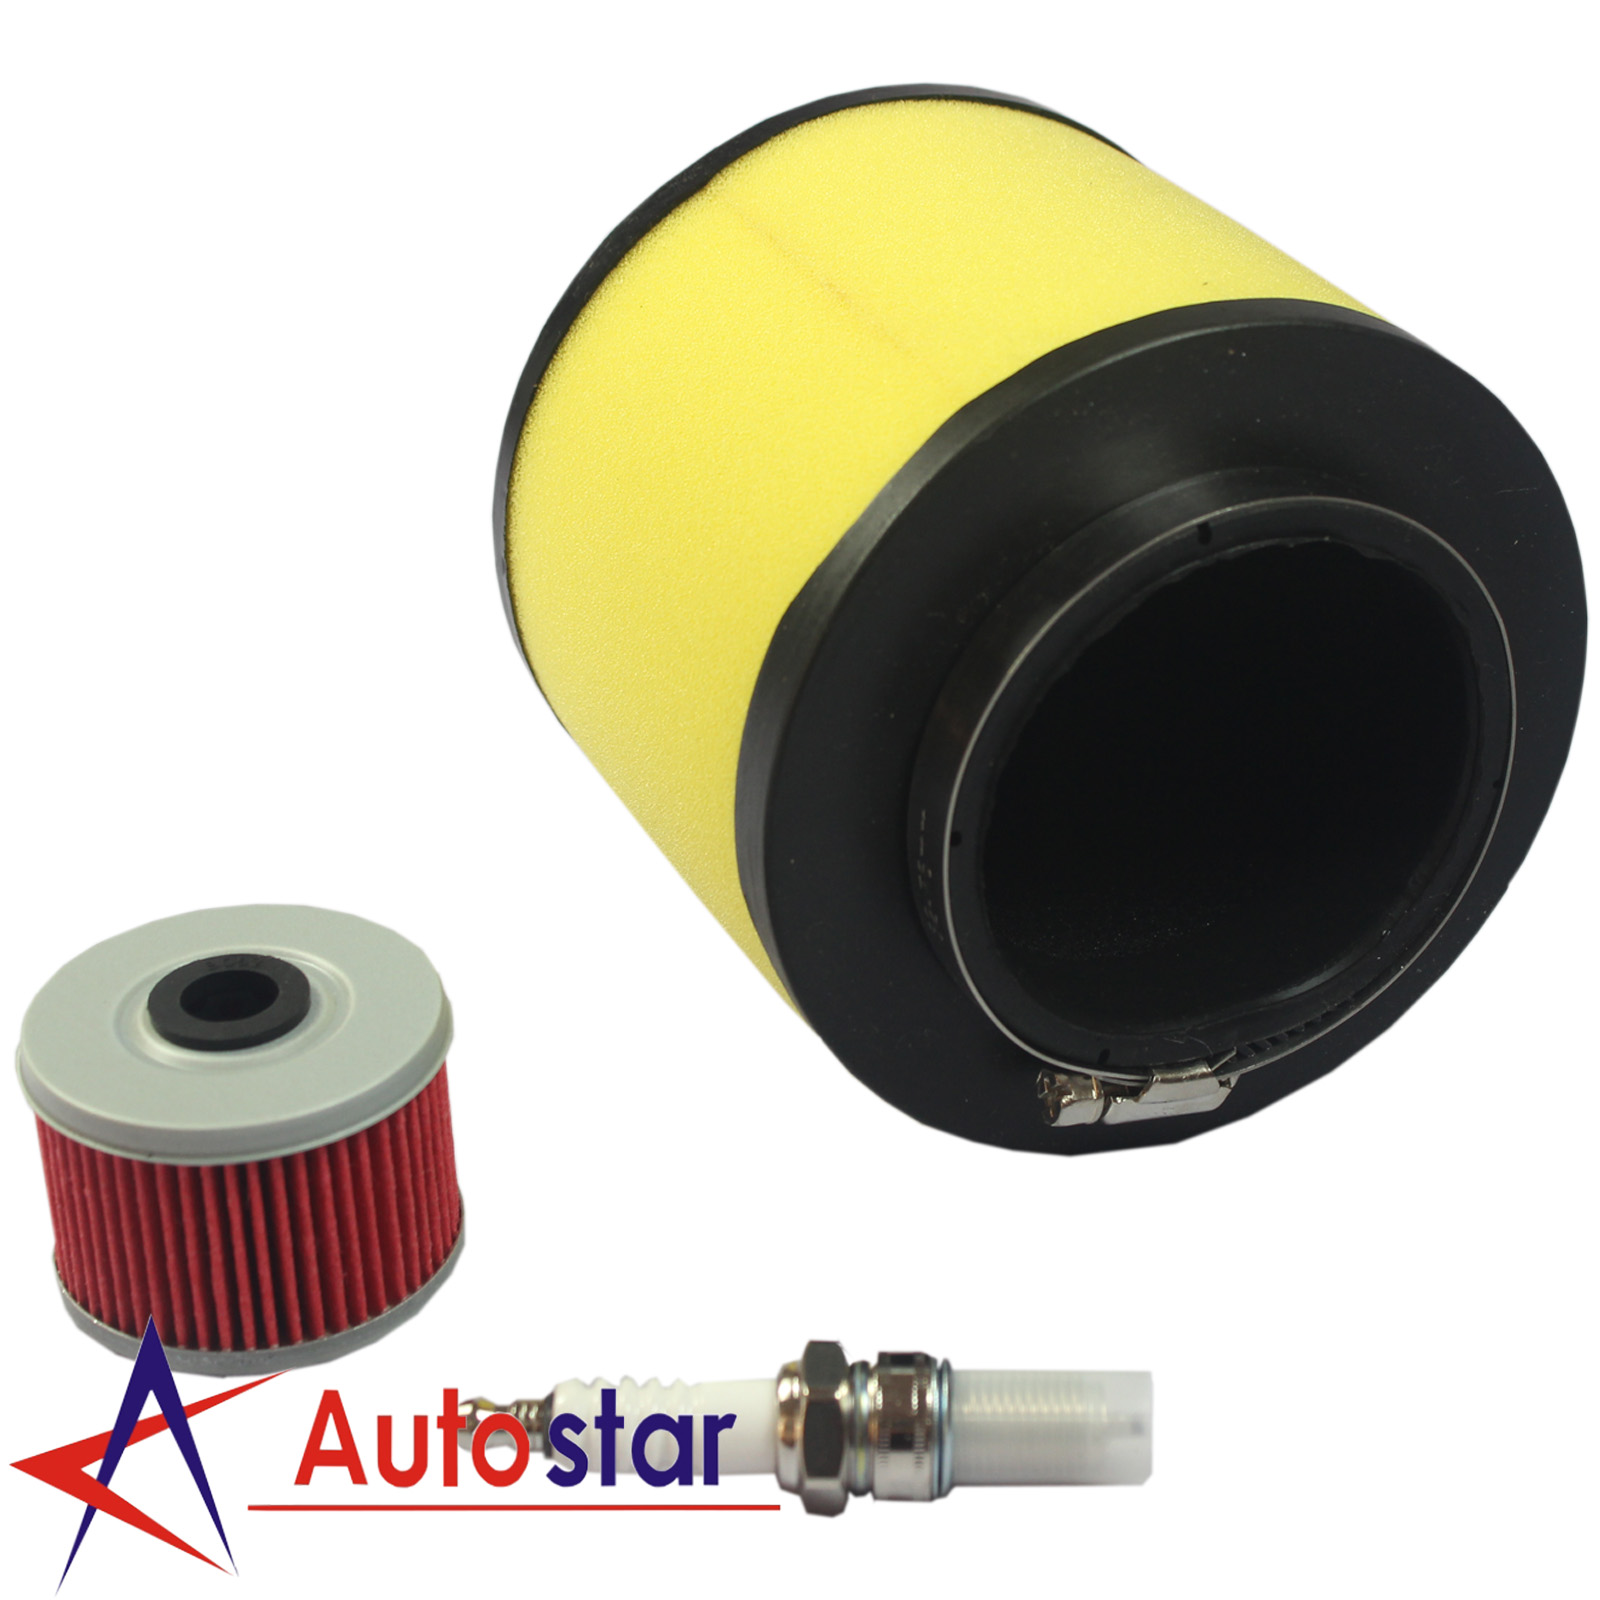 Air Filter Fuel Oil Filter With Spark Plug For Honda Foreman 400 450  Rancher 350